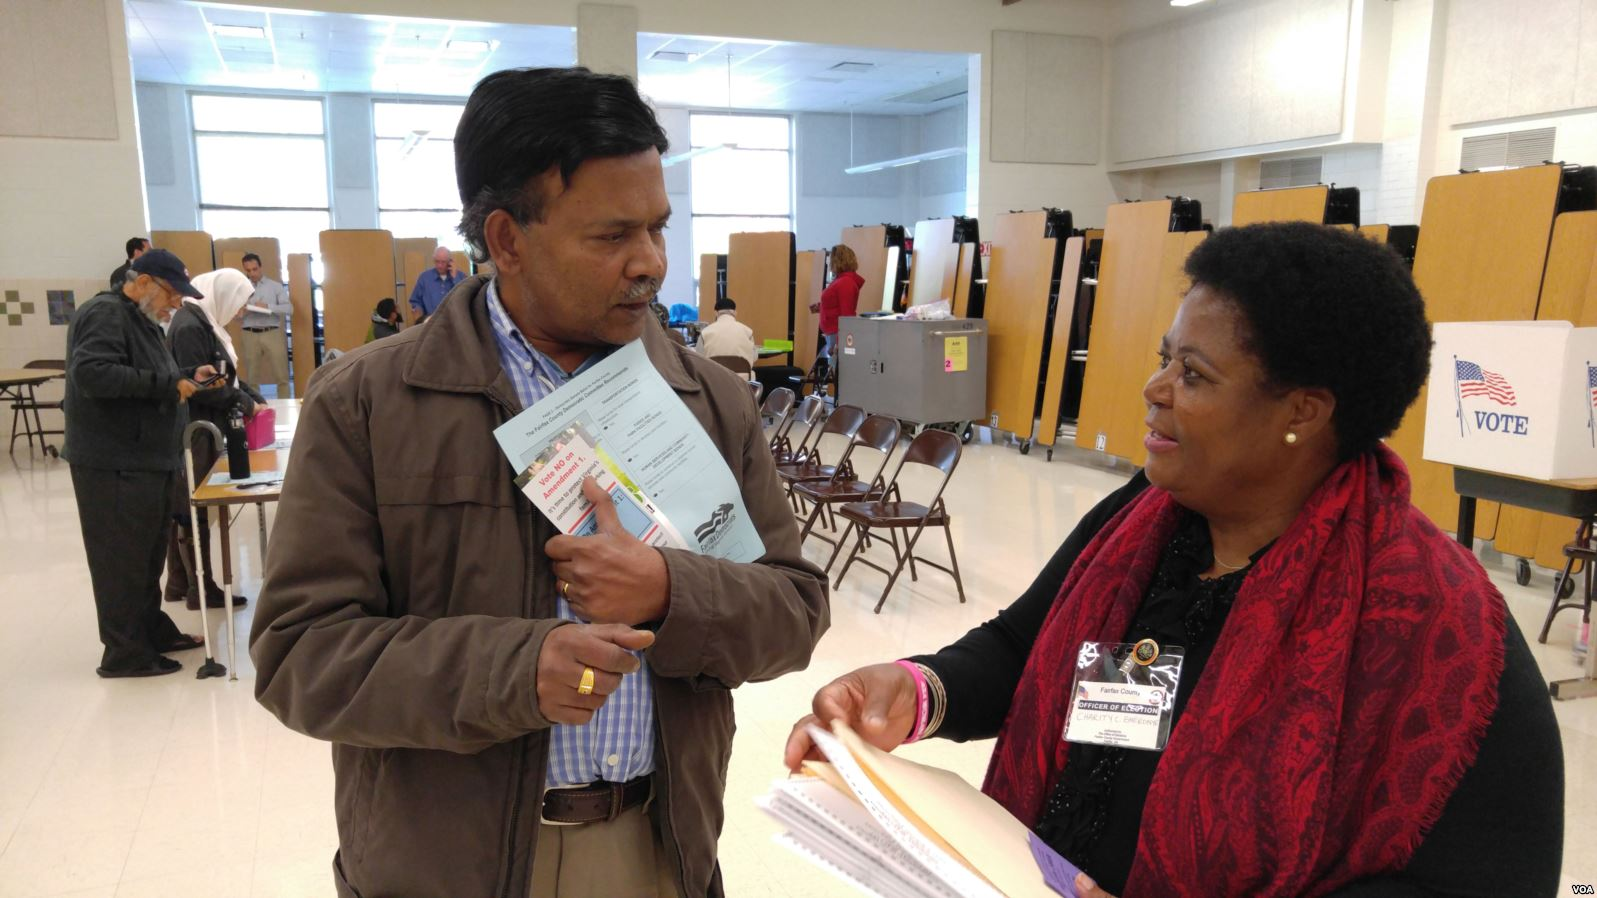 Virginia_voter_gets_election_materials_from_polling_station_worker_before_voting_in_us_presidential_election__nov